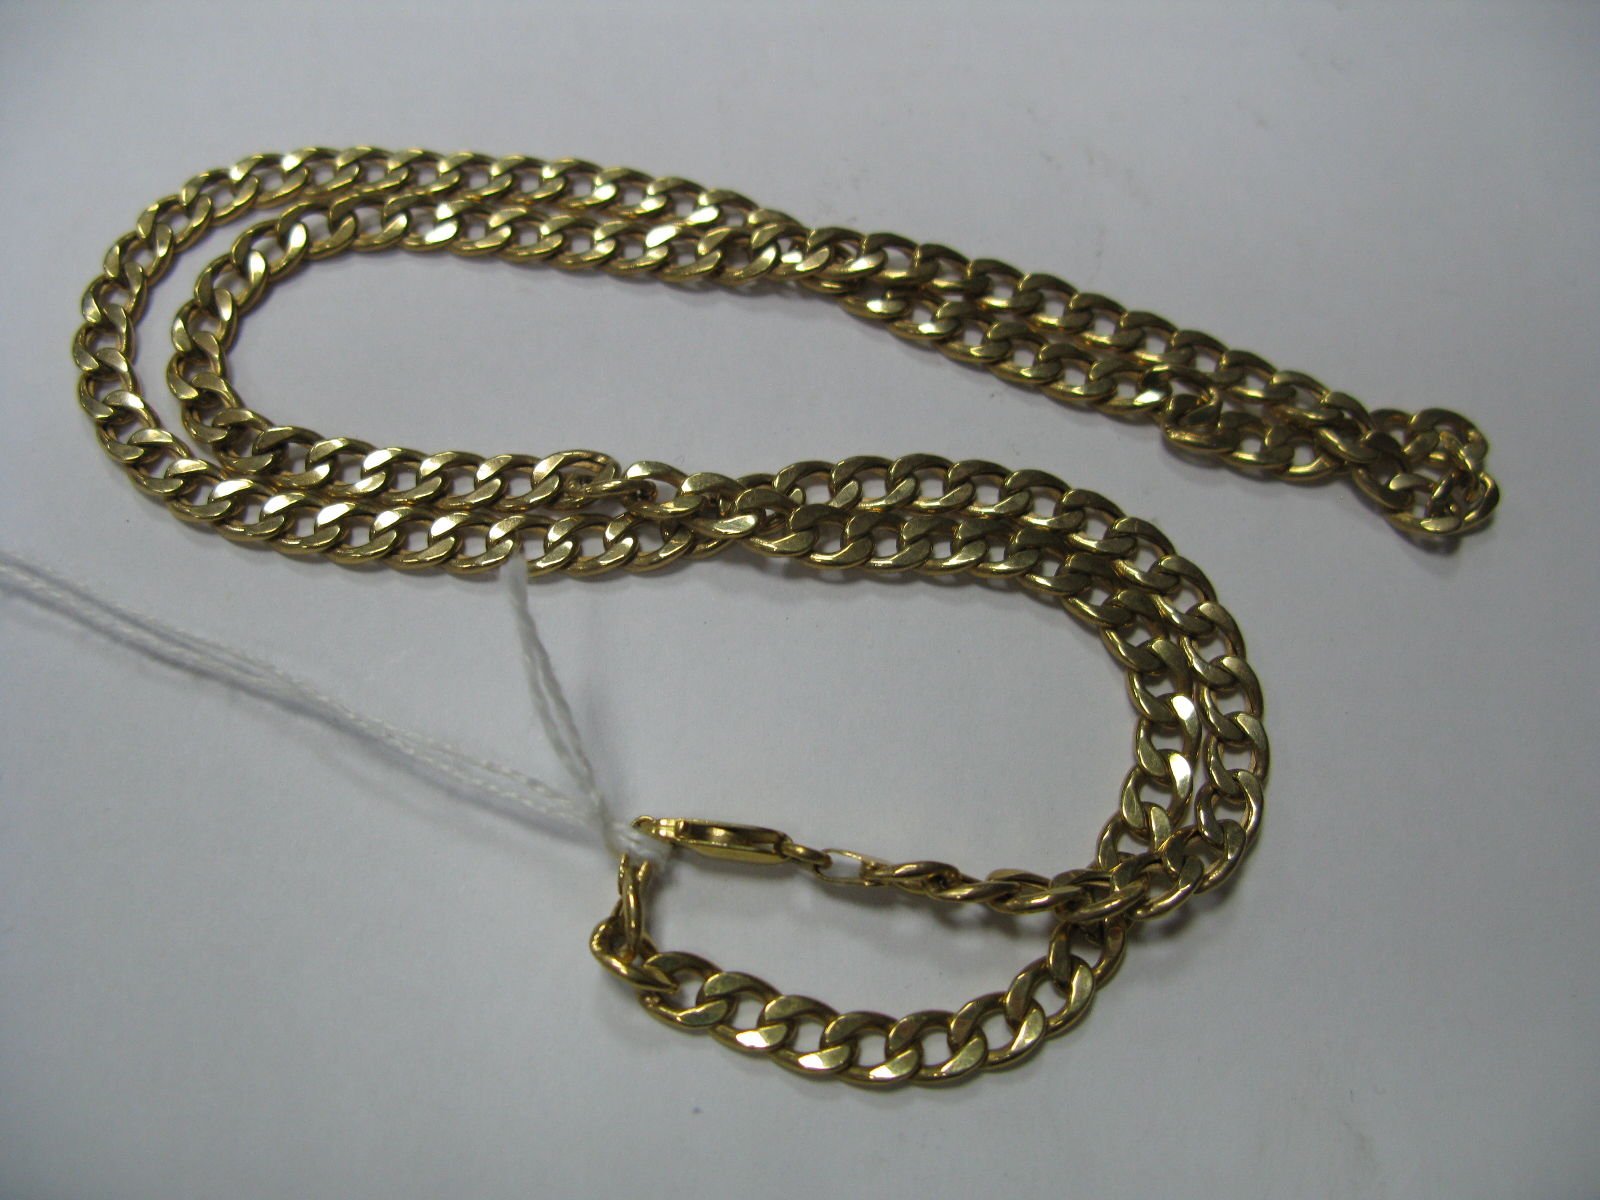 Lot 1373 - A 9ct Gold Curb Link Chain, of uniform design.